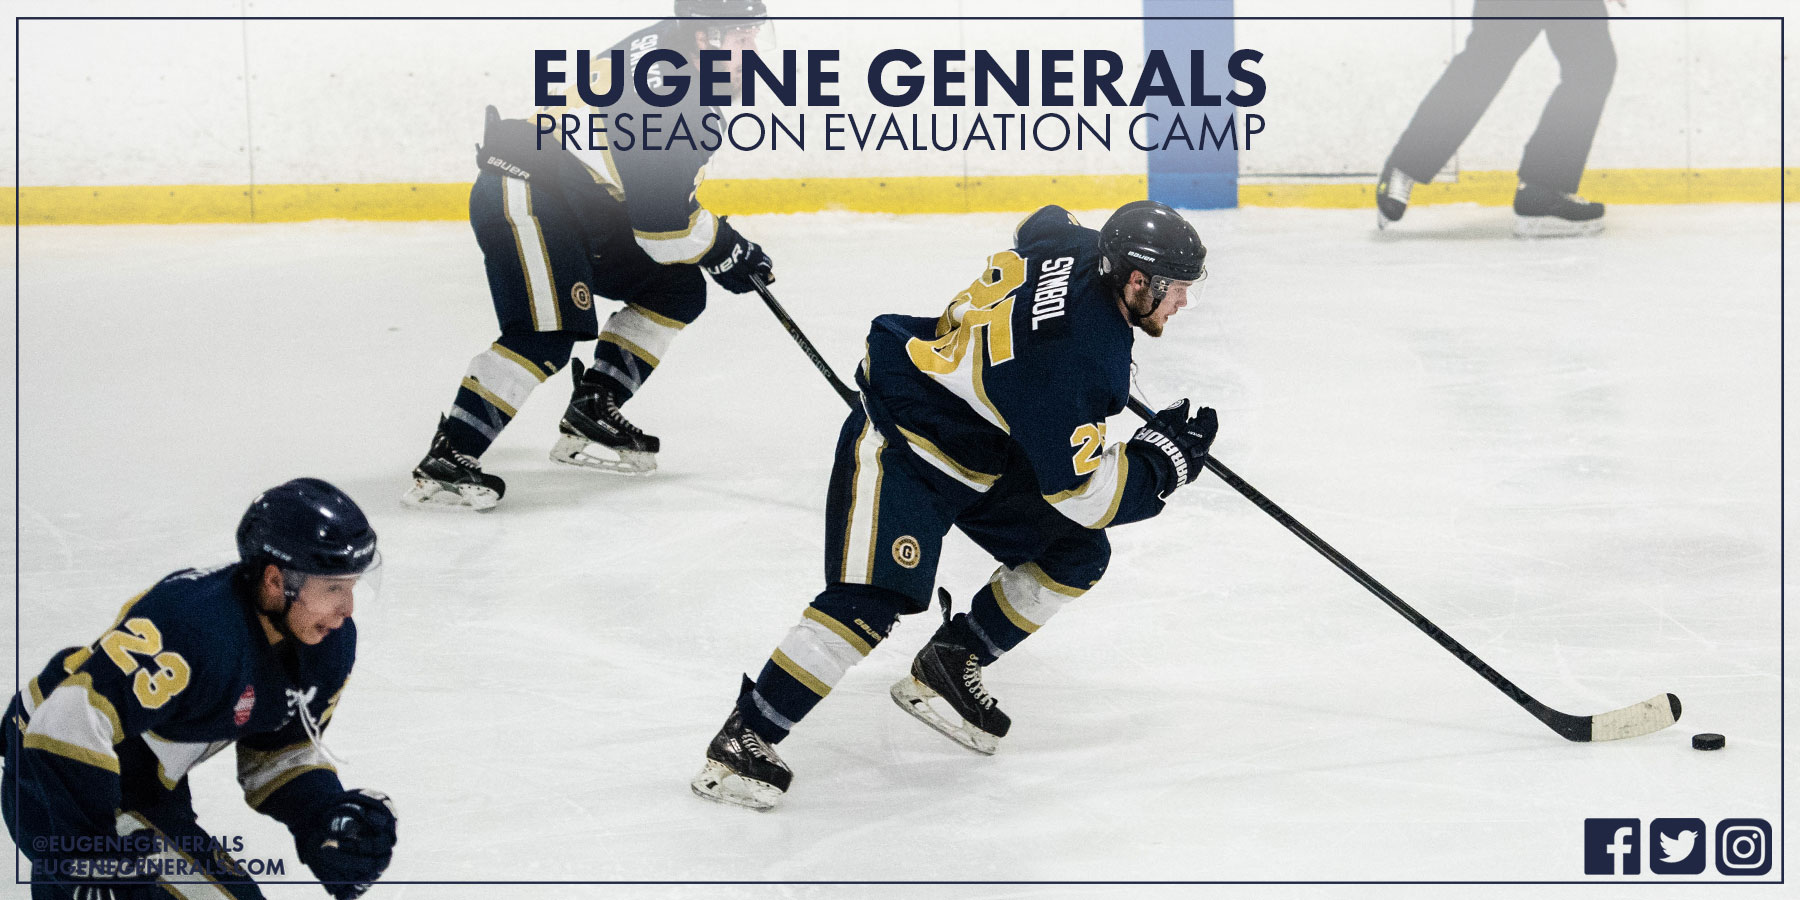 Schedule Finalized For Preseason Evaluation Camp